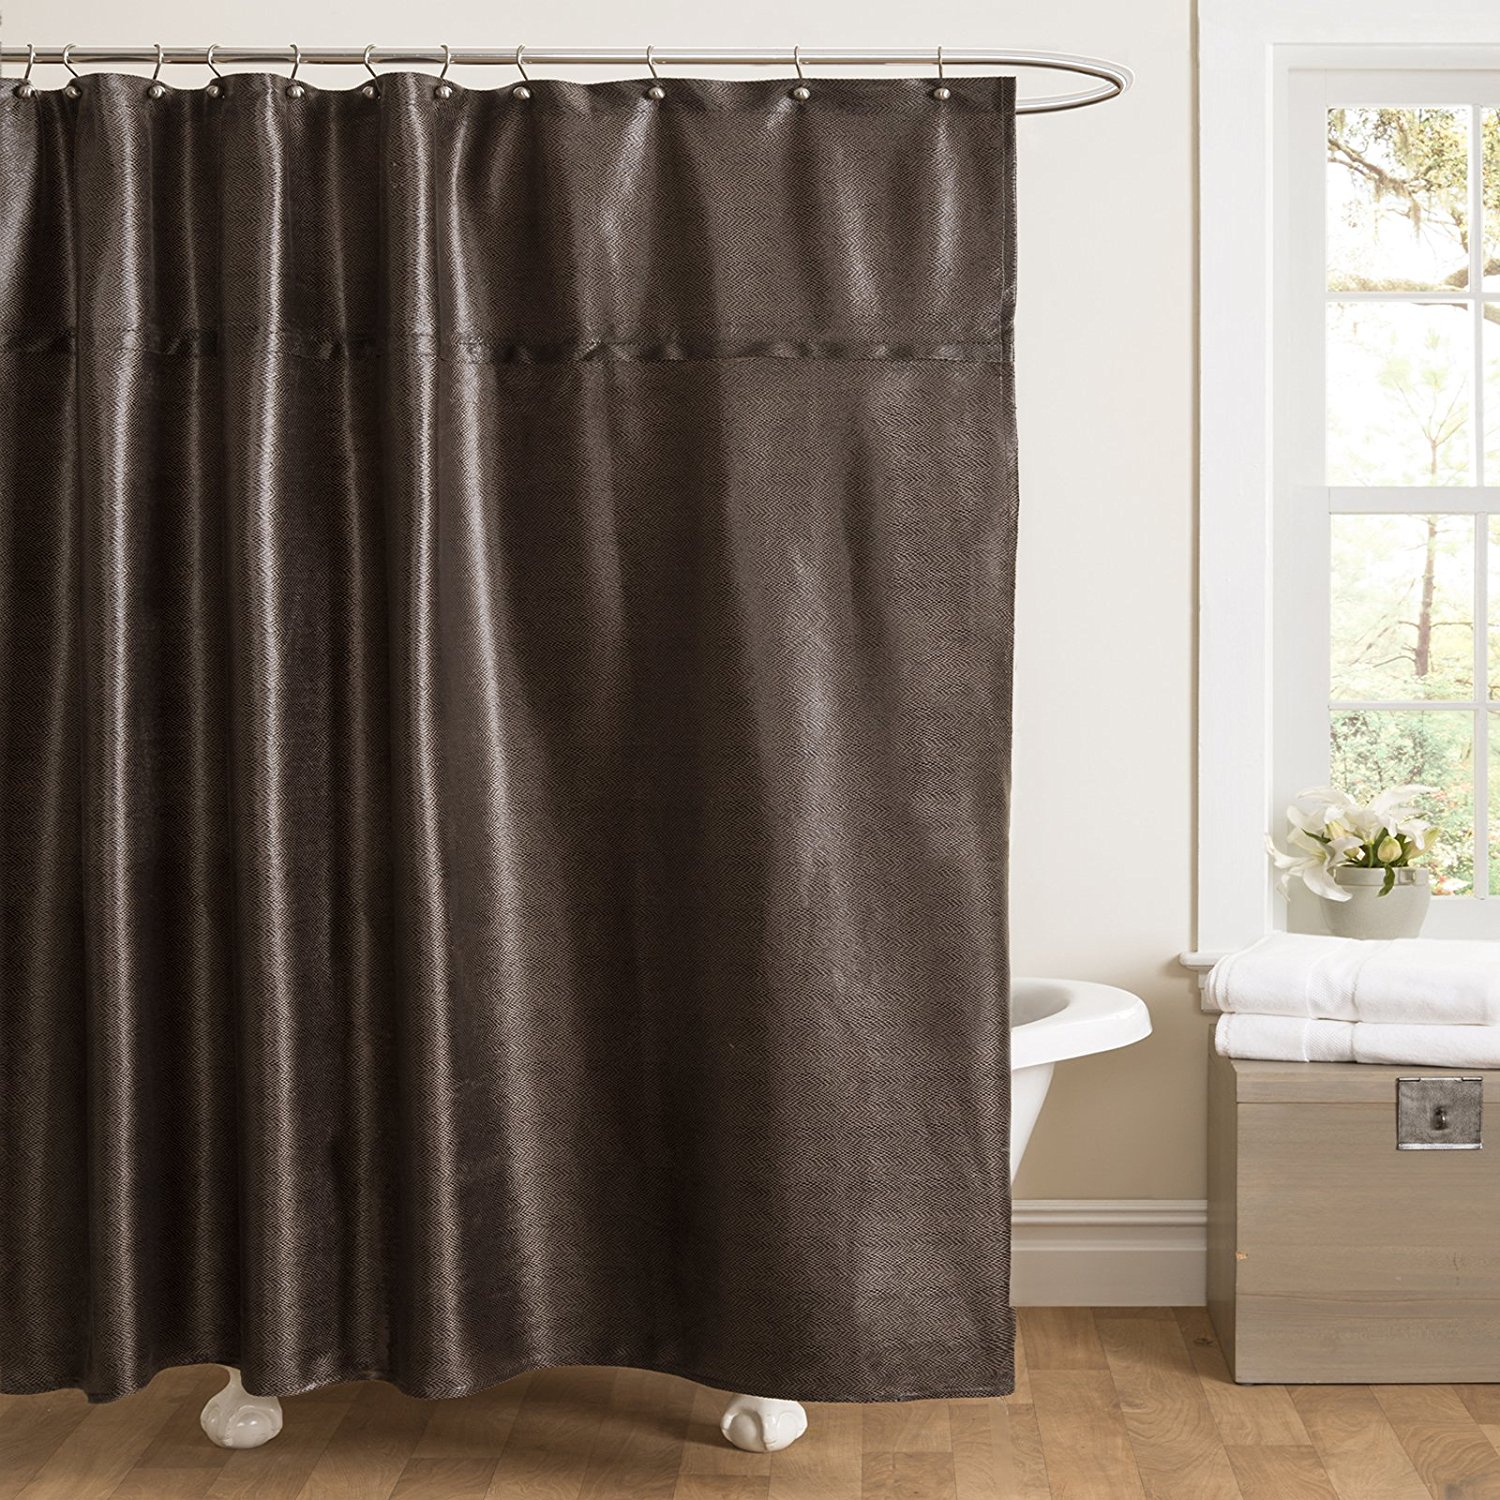 Brown Leather Shower Curtains Design Throughout Dimensions 1500 X